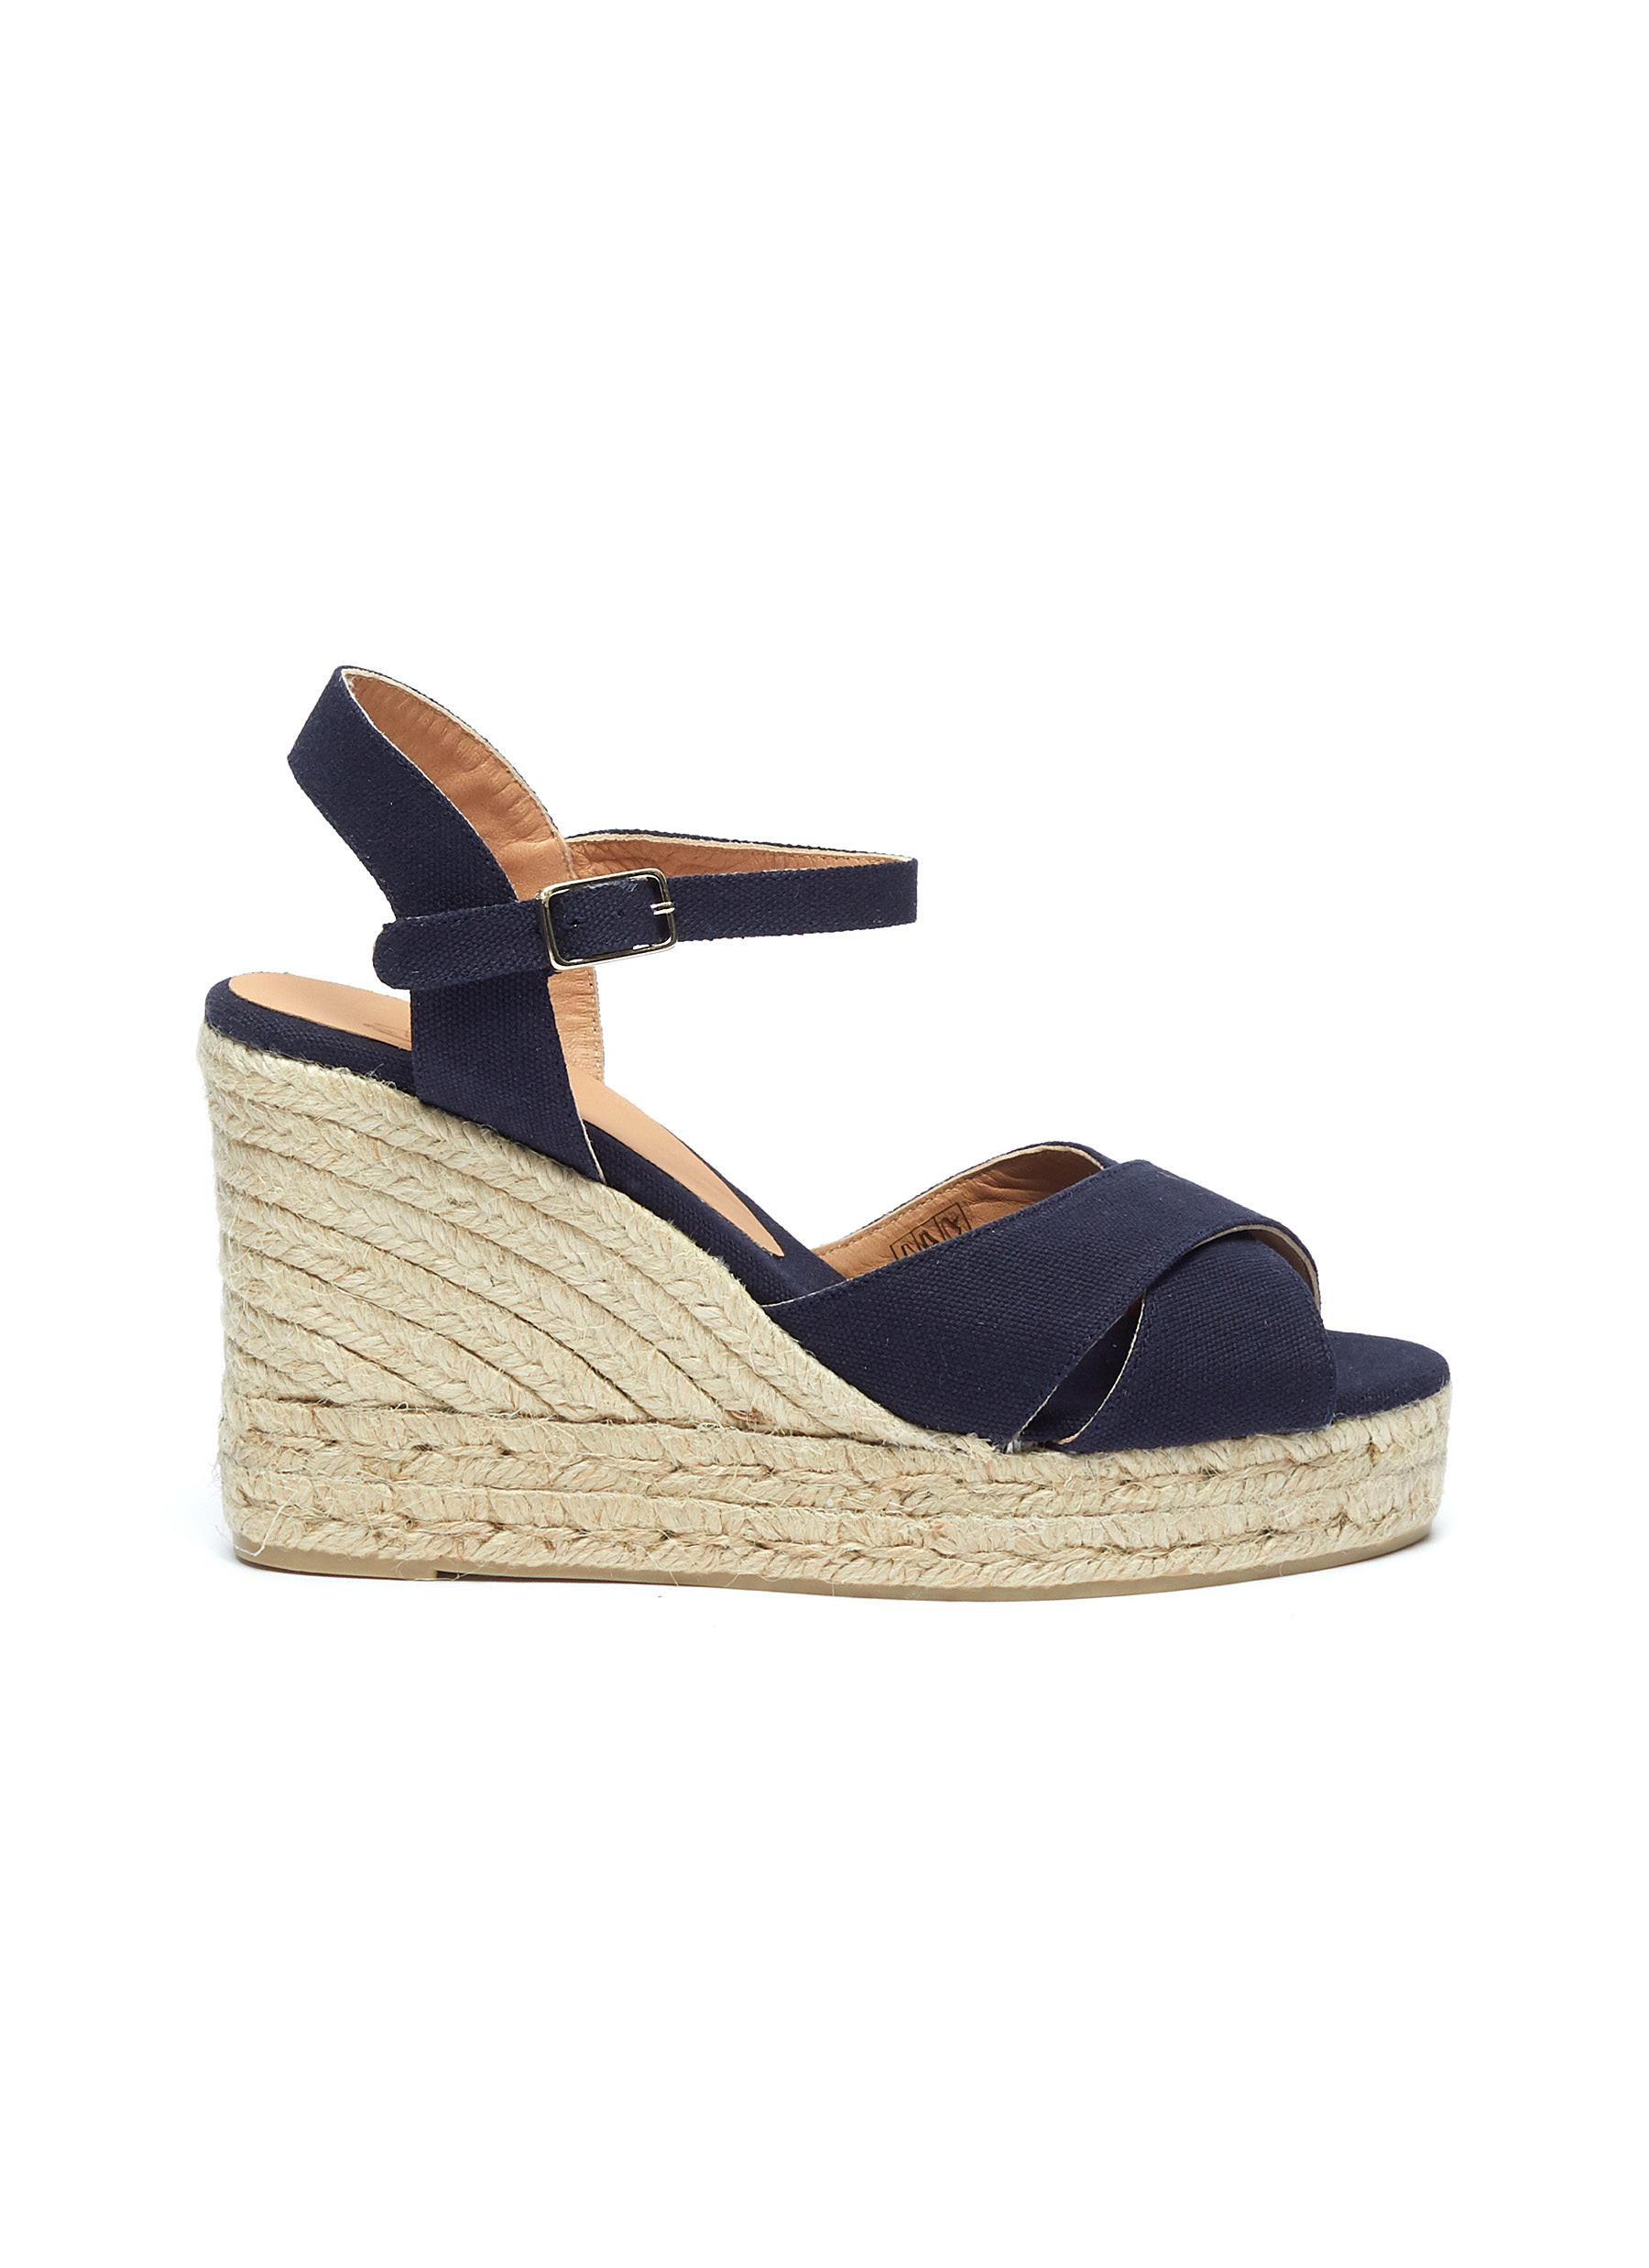 Blaudell ankle strap canvas wedge espadrille sandals by Castañer